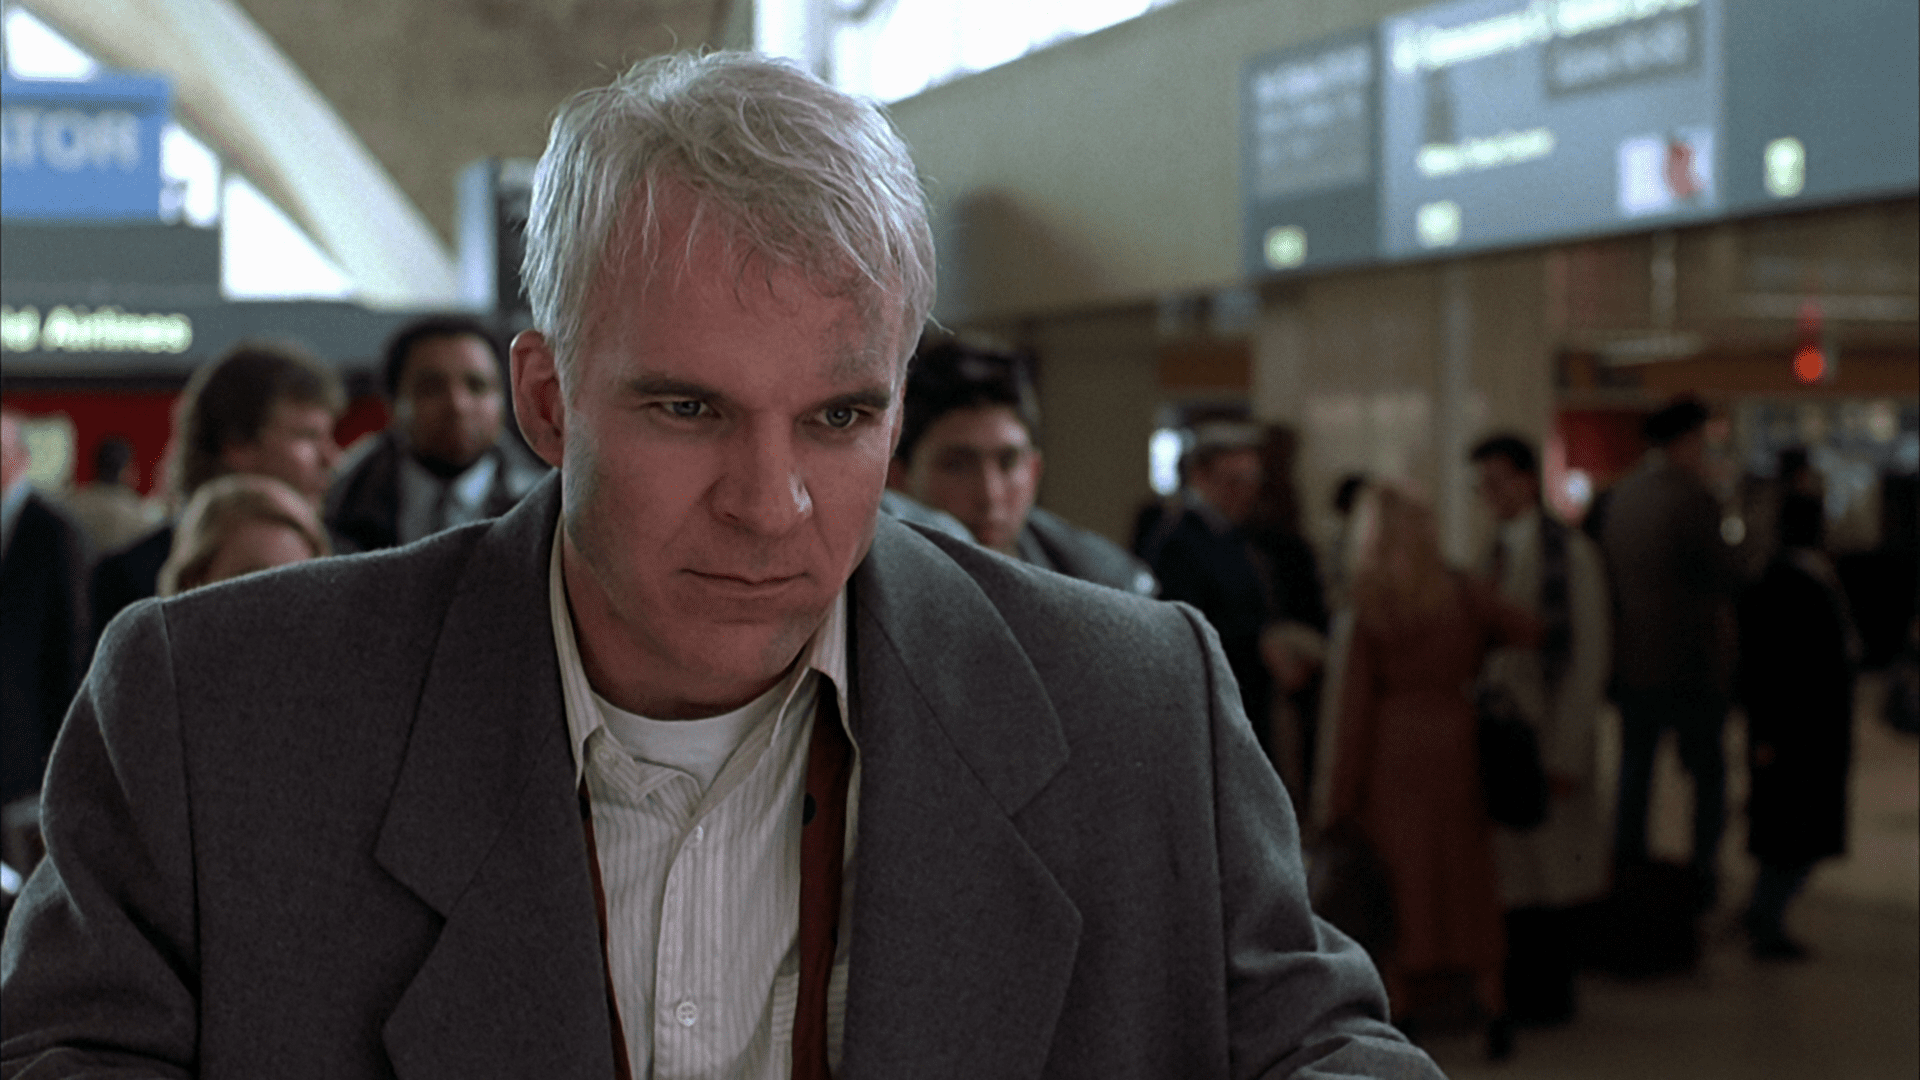 Steve Martin as Neal Page in Planes Trains and Automobiles by John Hughes which is a movie I'm mentioning for SEO Juice.